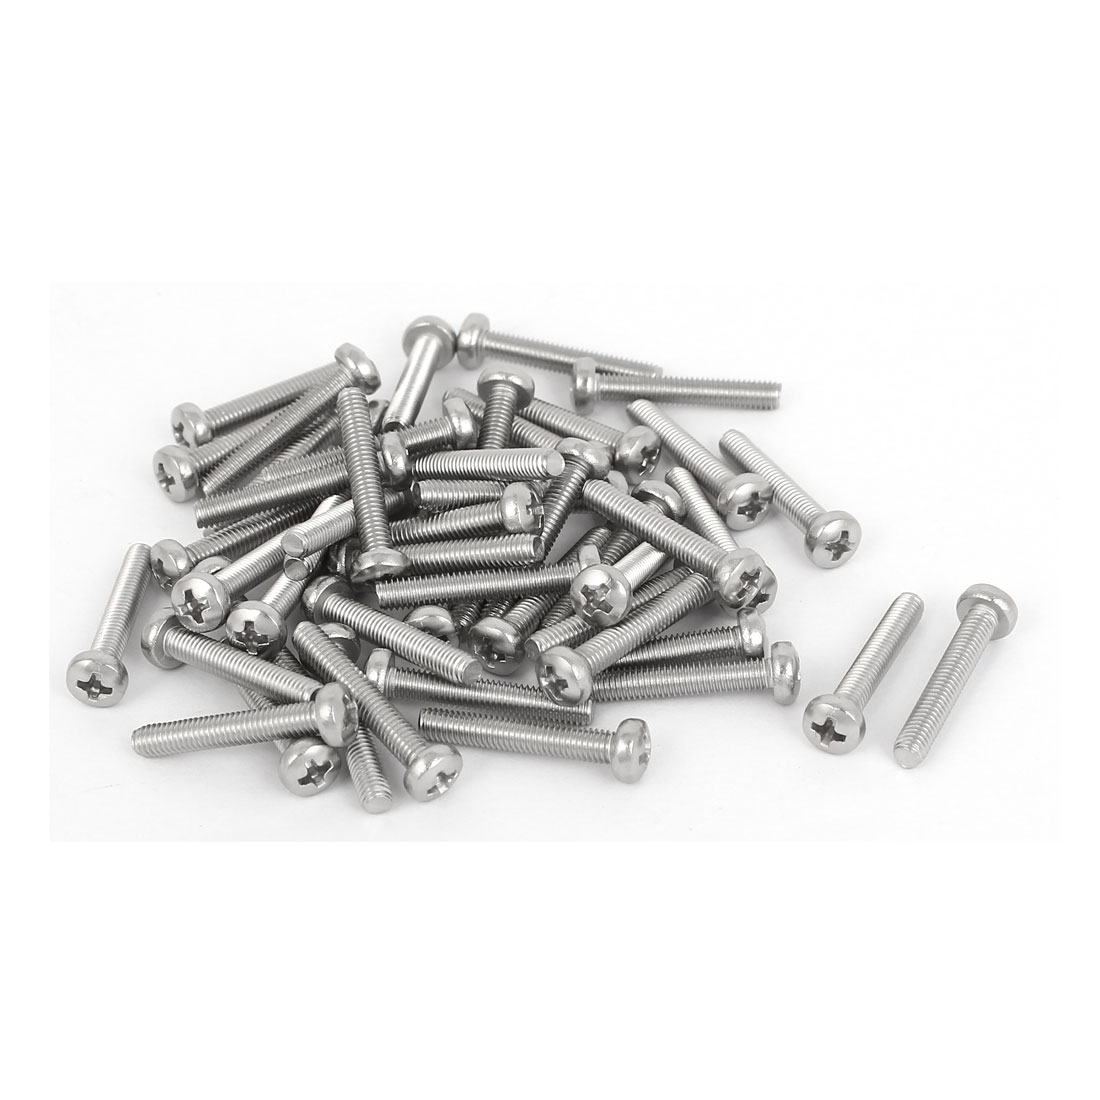 50 Pcs M3x18mm 316 Stainless Steel Phillips Pan Head Machine Screws Silver Tone